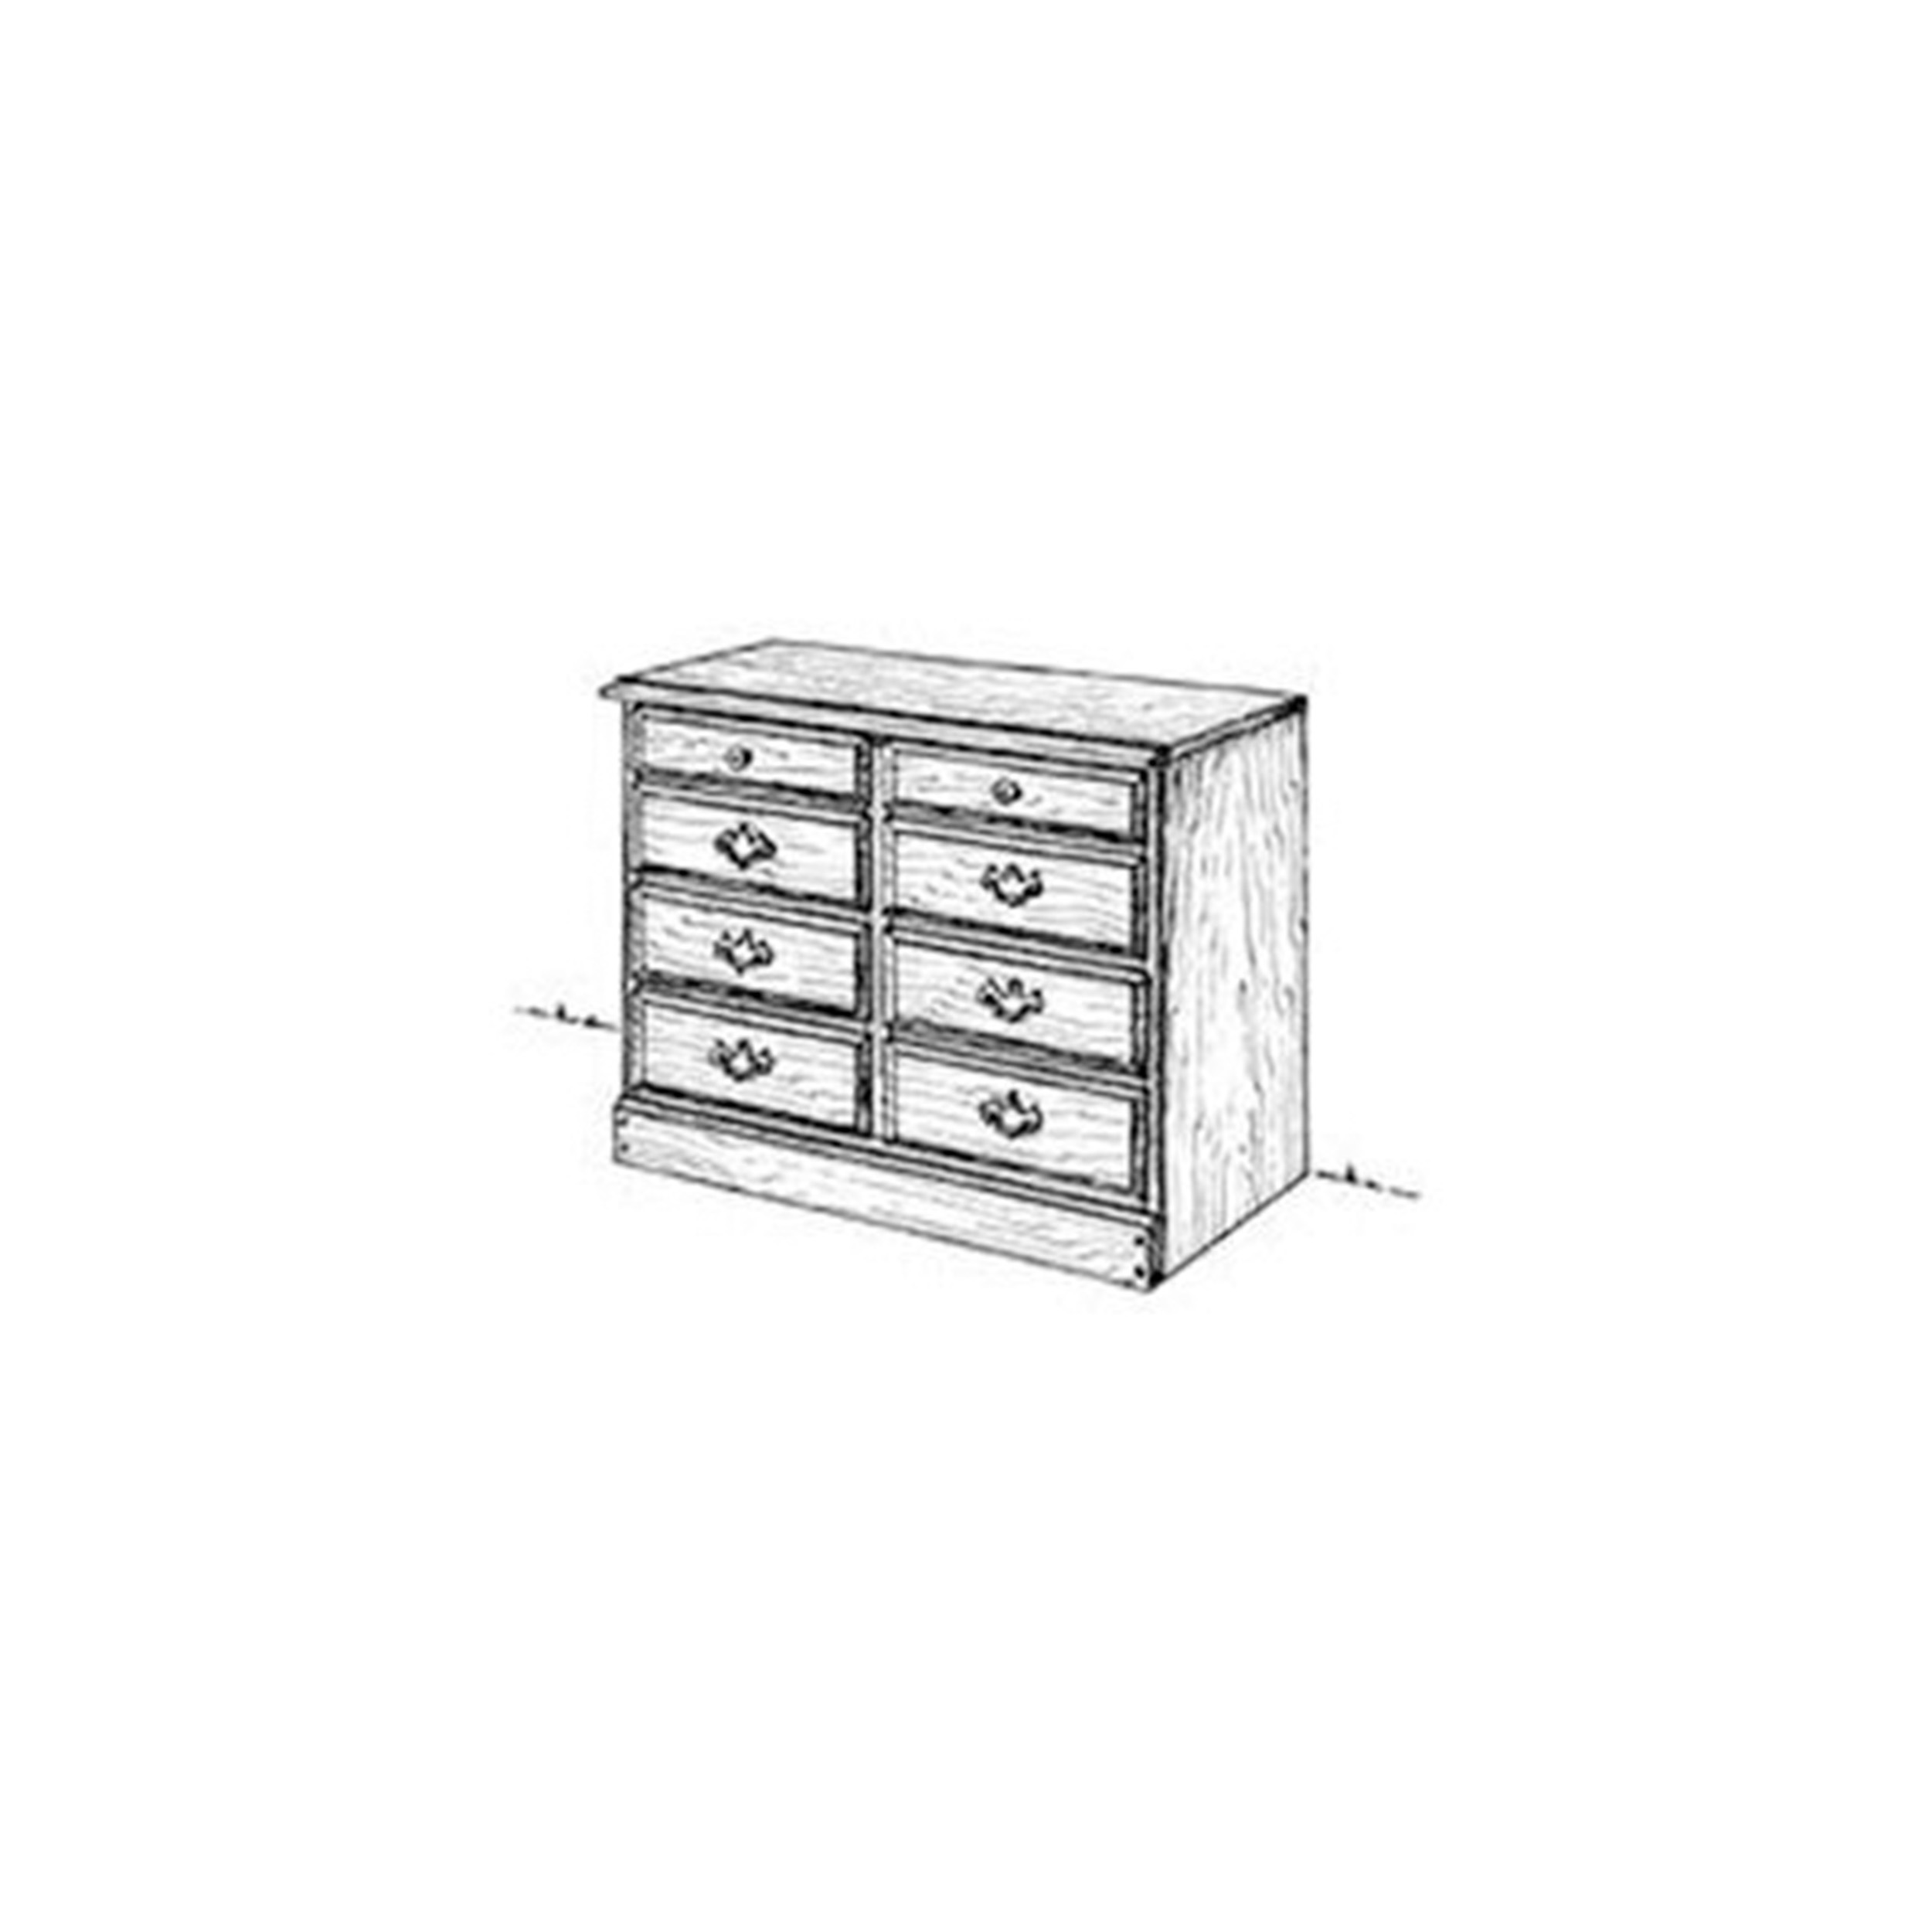 Woodworking Project Paper Plan to Build Chest of Drawers 30